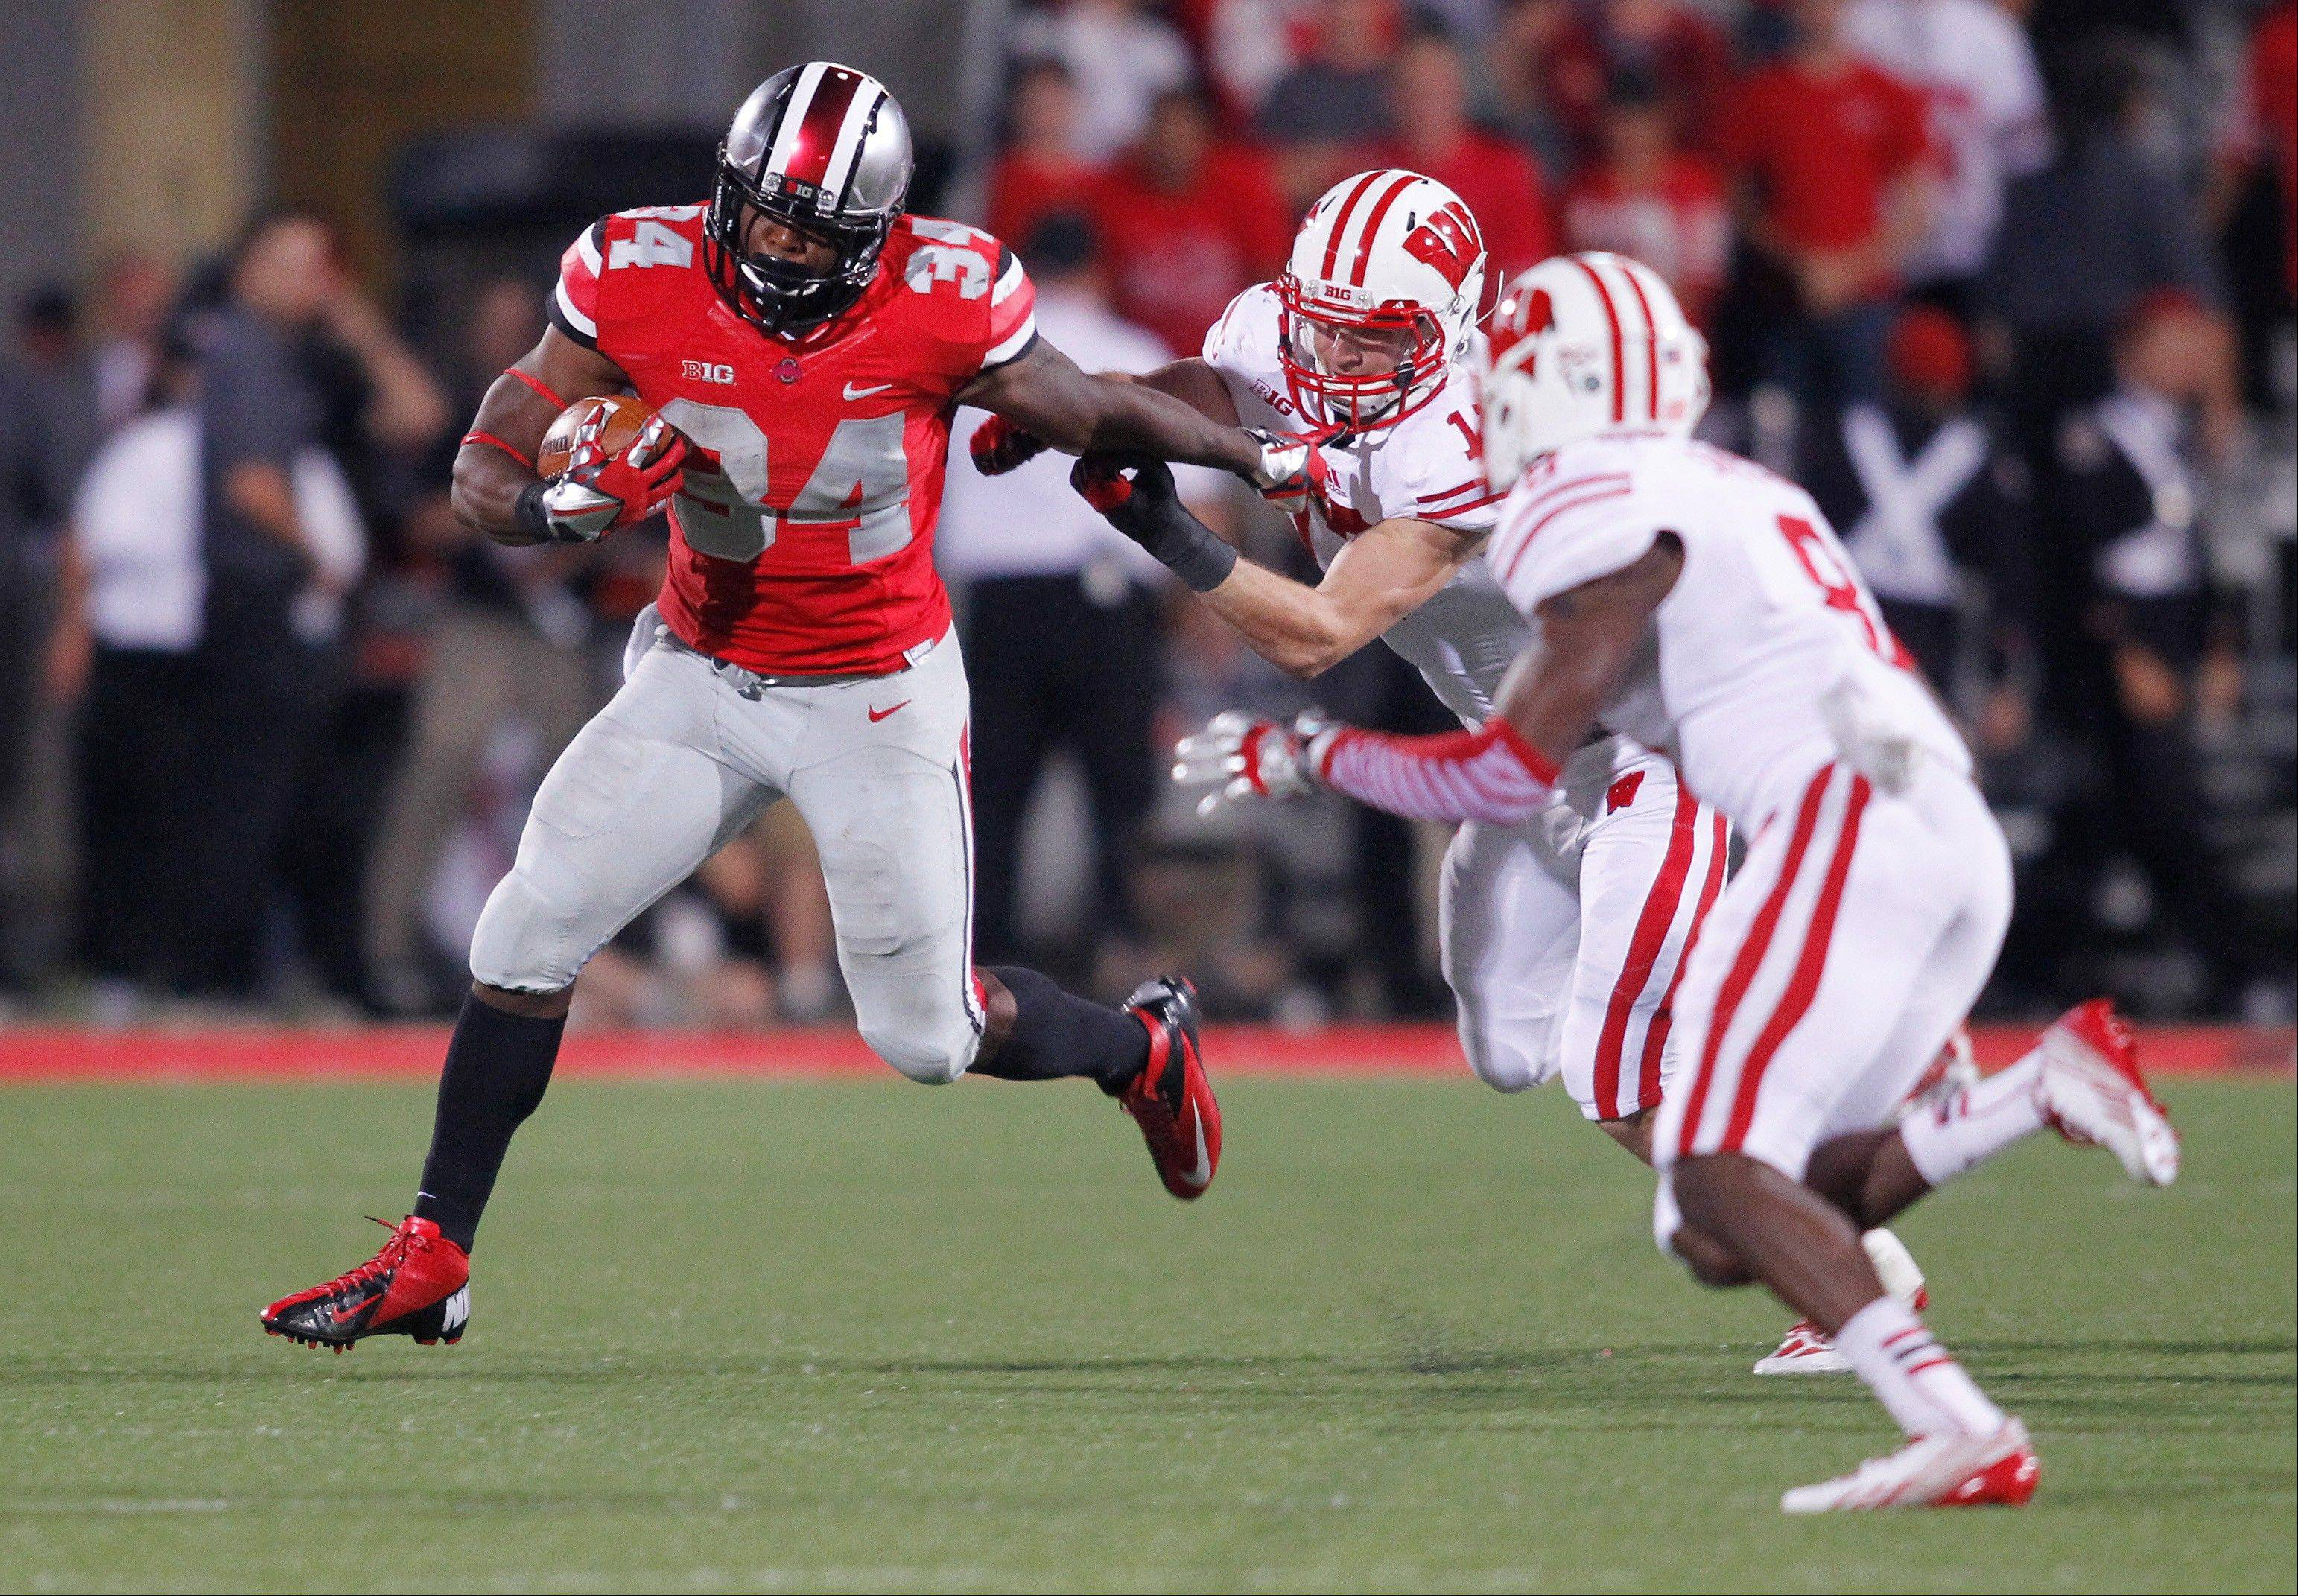 Ohio State running back Carlos Hyde tries to get around Wisconsin defenders during the fourth quarter of the Sept. 28 game in Columbus, Ohio. After a long weekend at home over the bye week, Hyde and the Buckeyes are getting serious heading into Saturday's home game against Iowa.